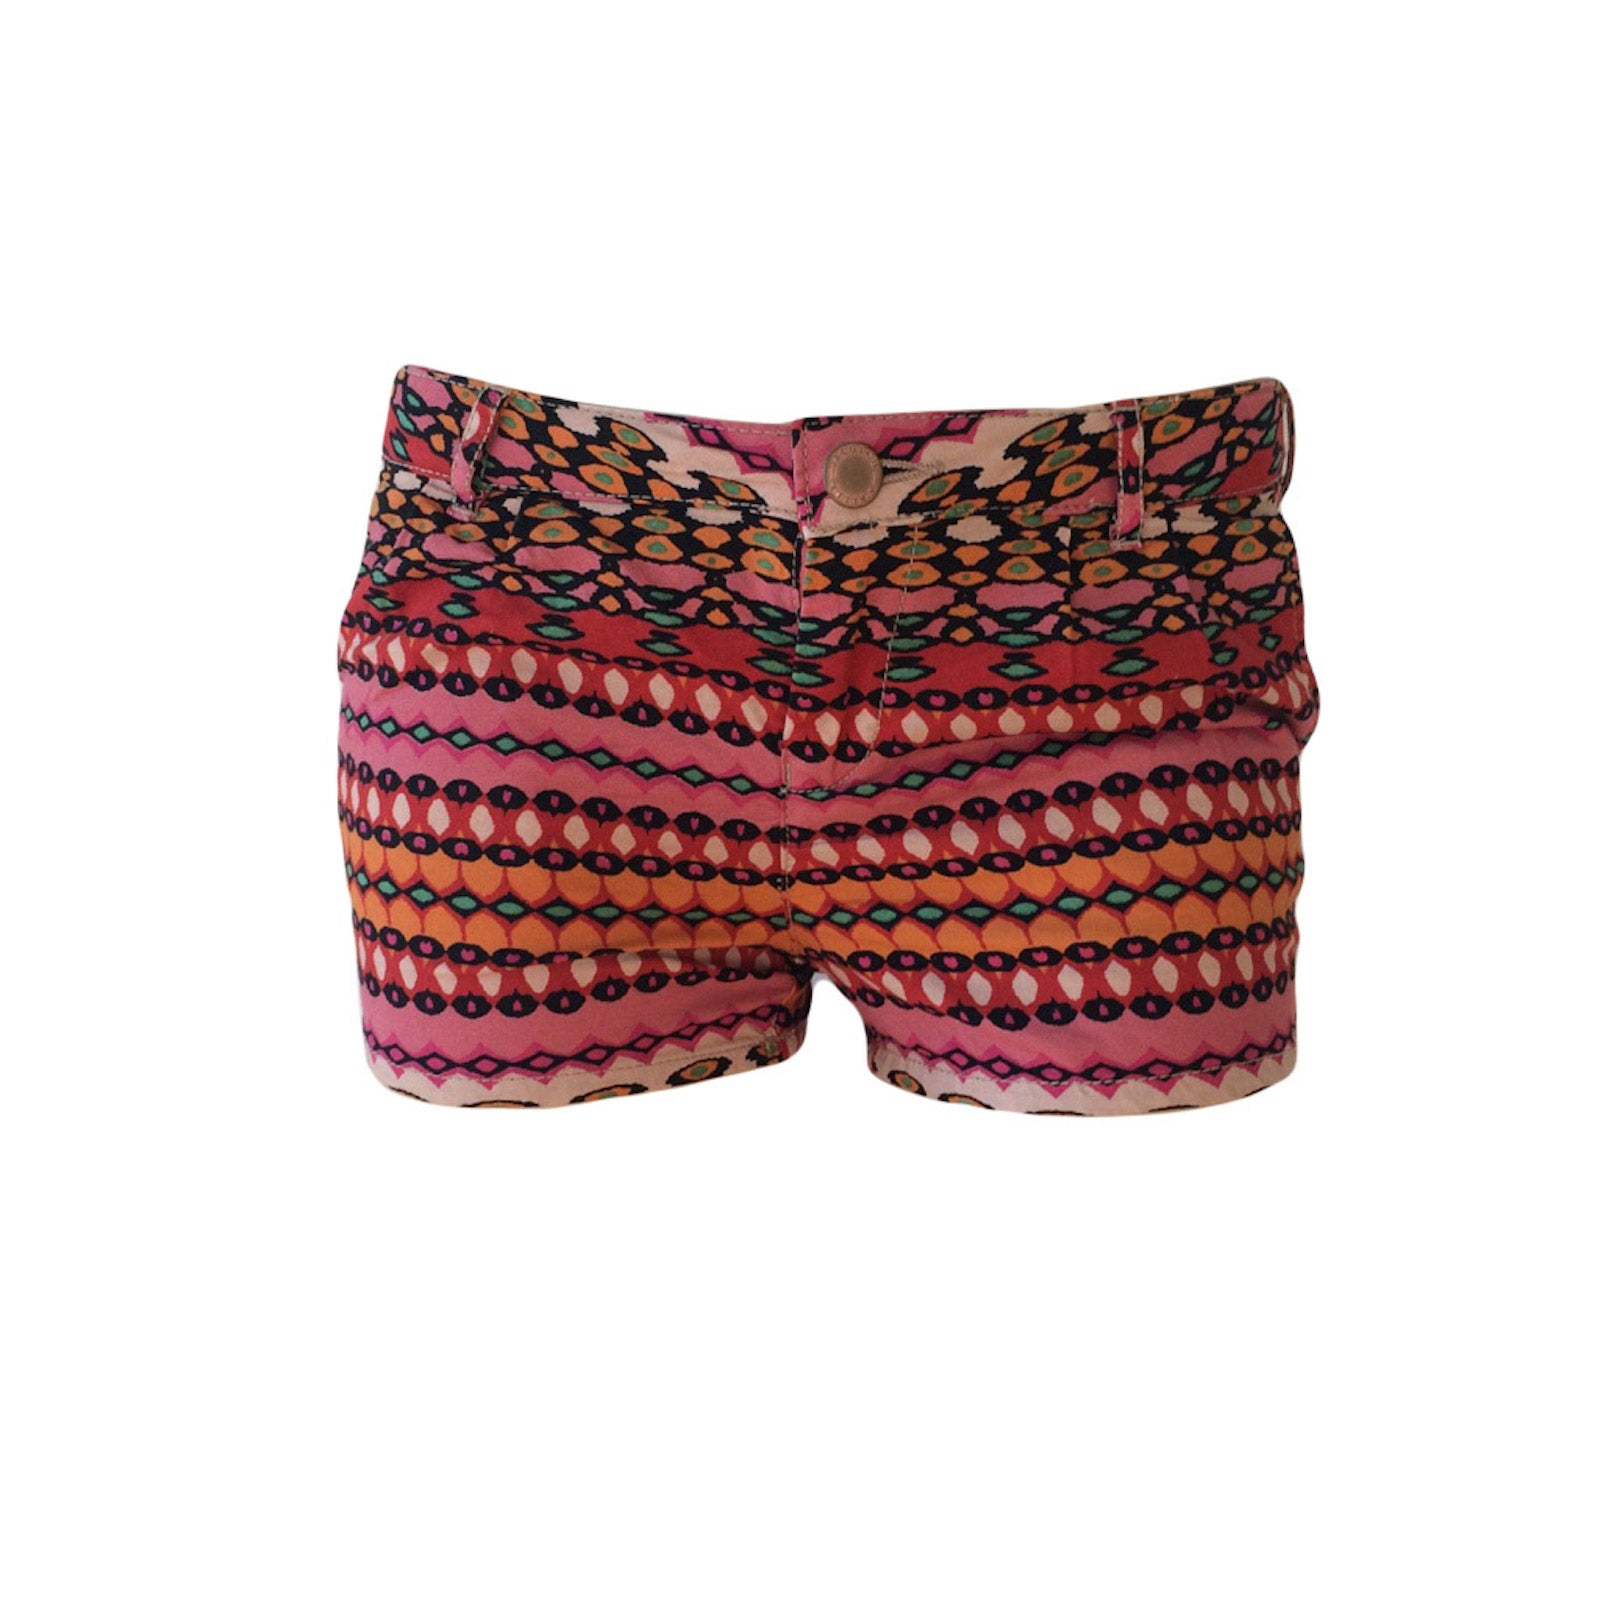 LOVE these red boho mini shorts by Scotch R